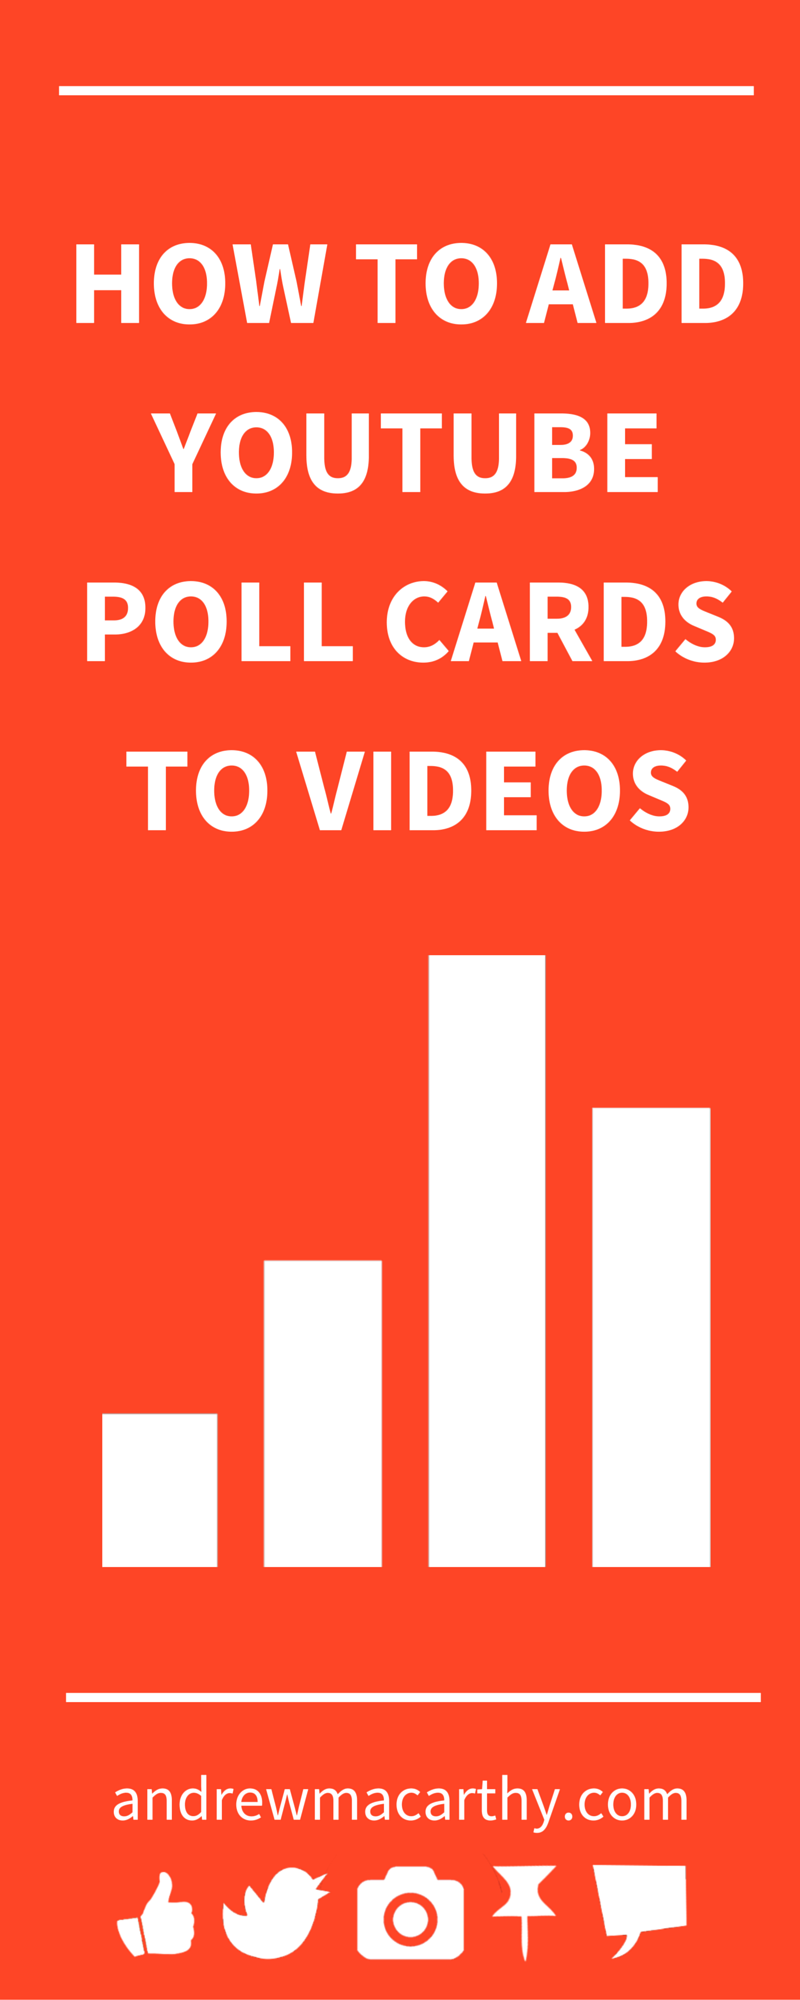 How to Add YouTube Poll Cards to Videos (And Everything Else You Need to Know). Would you like to poll your YouTube viewers? Want to find out what they think of your videos or products? You need the YouTube Poll Card!